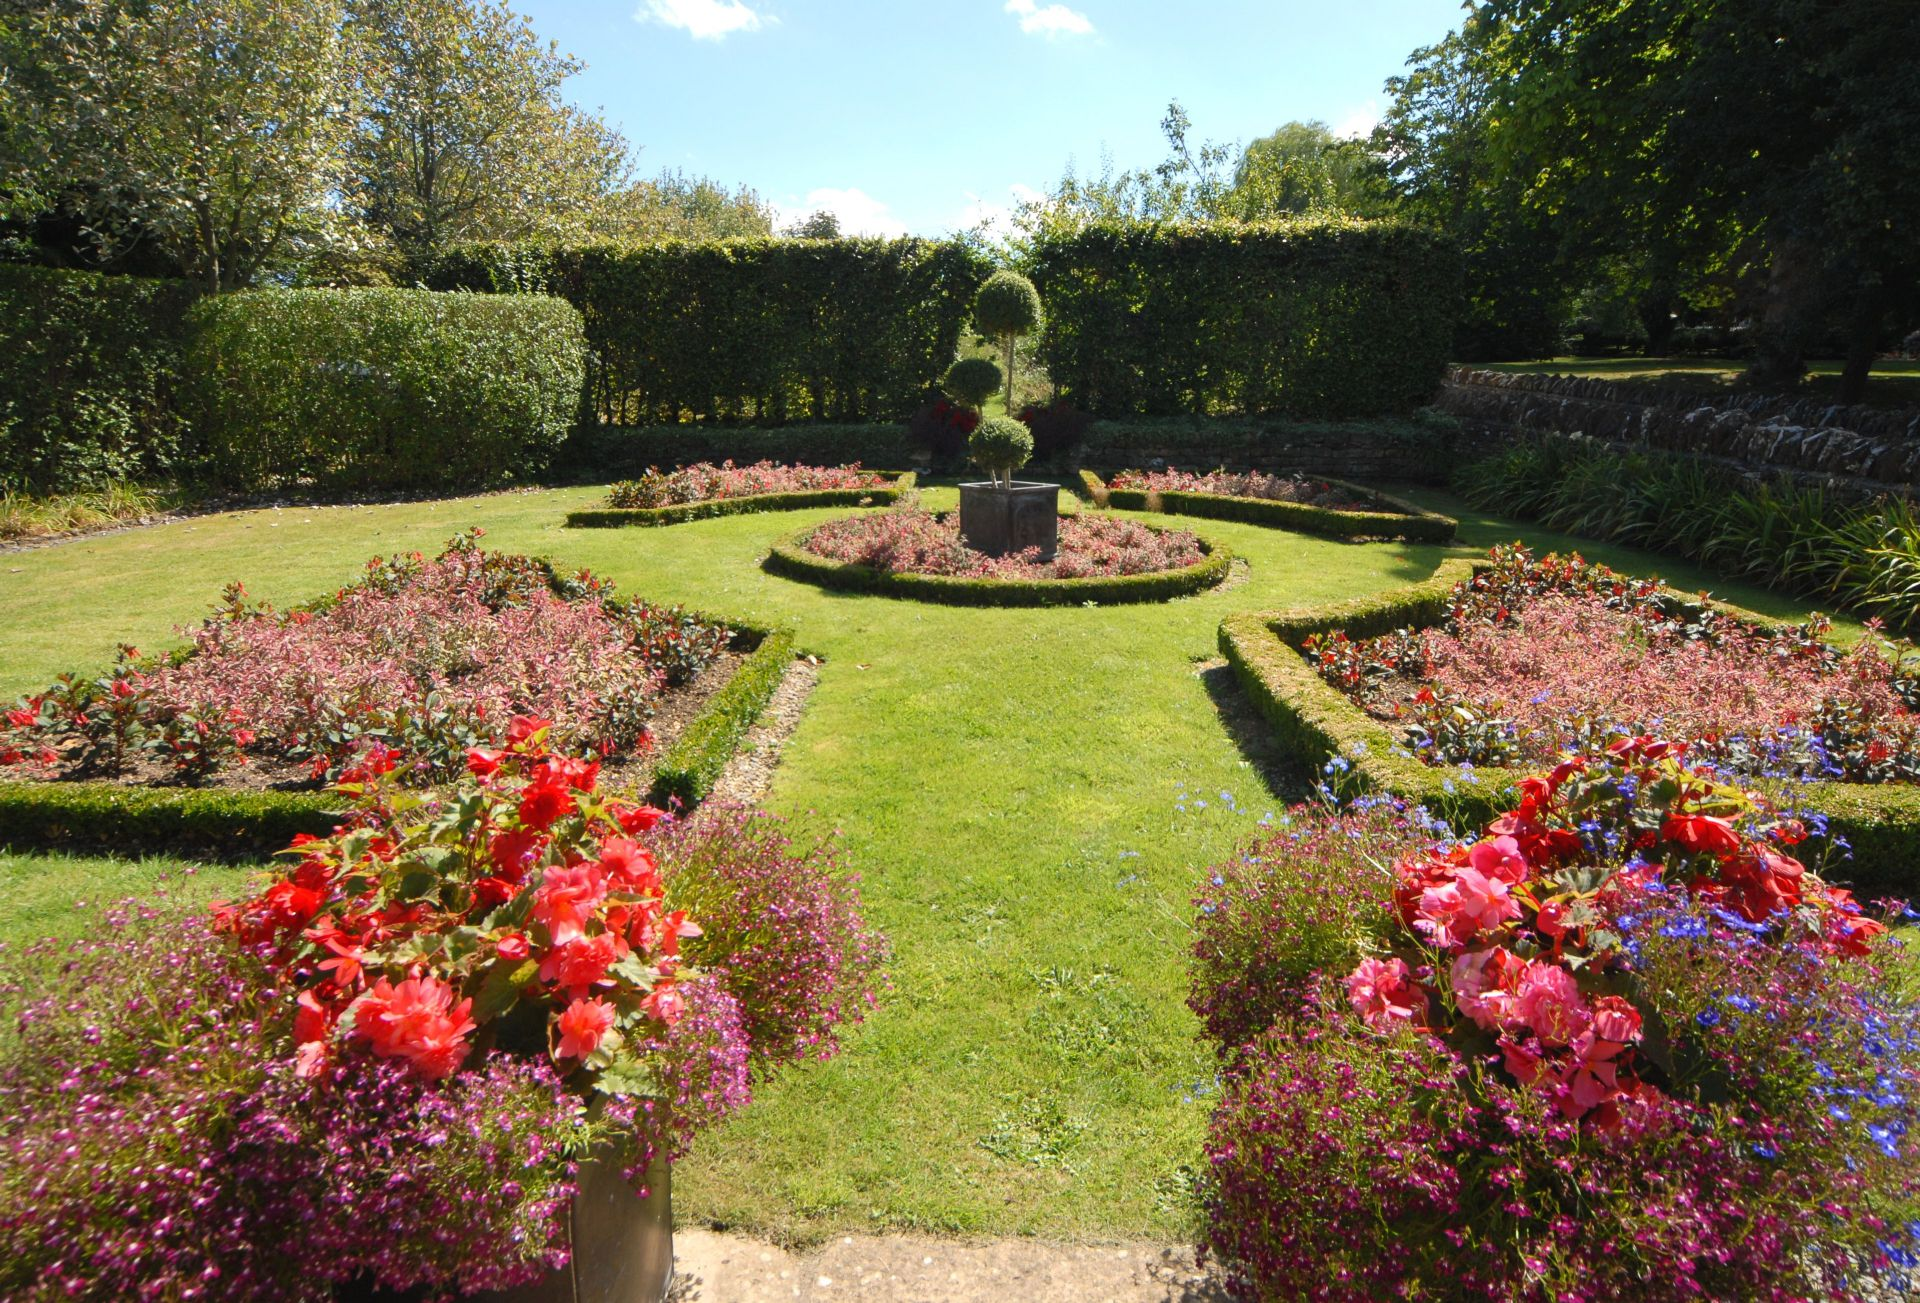 Another part of the attractive garden